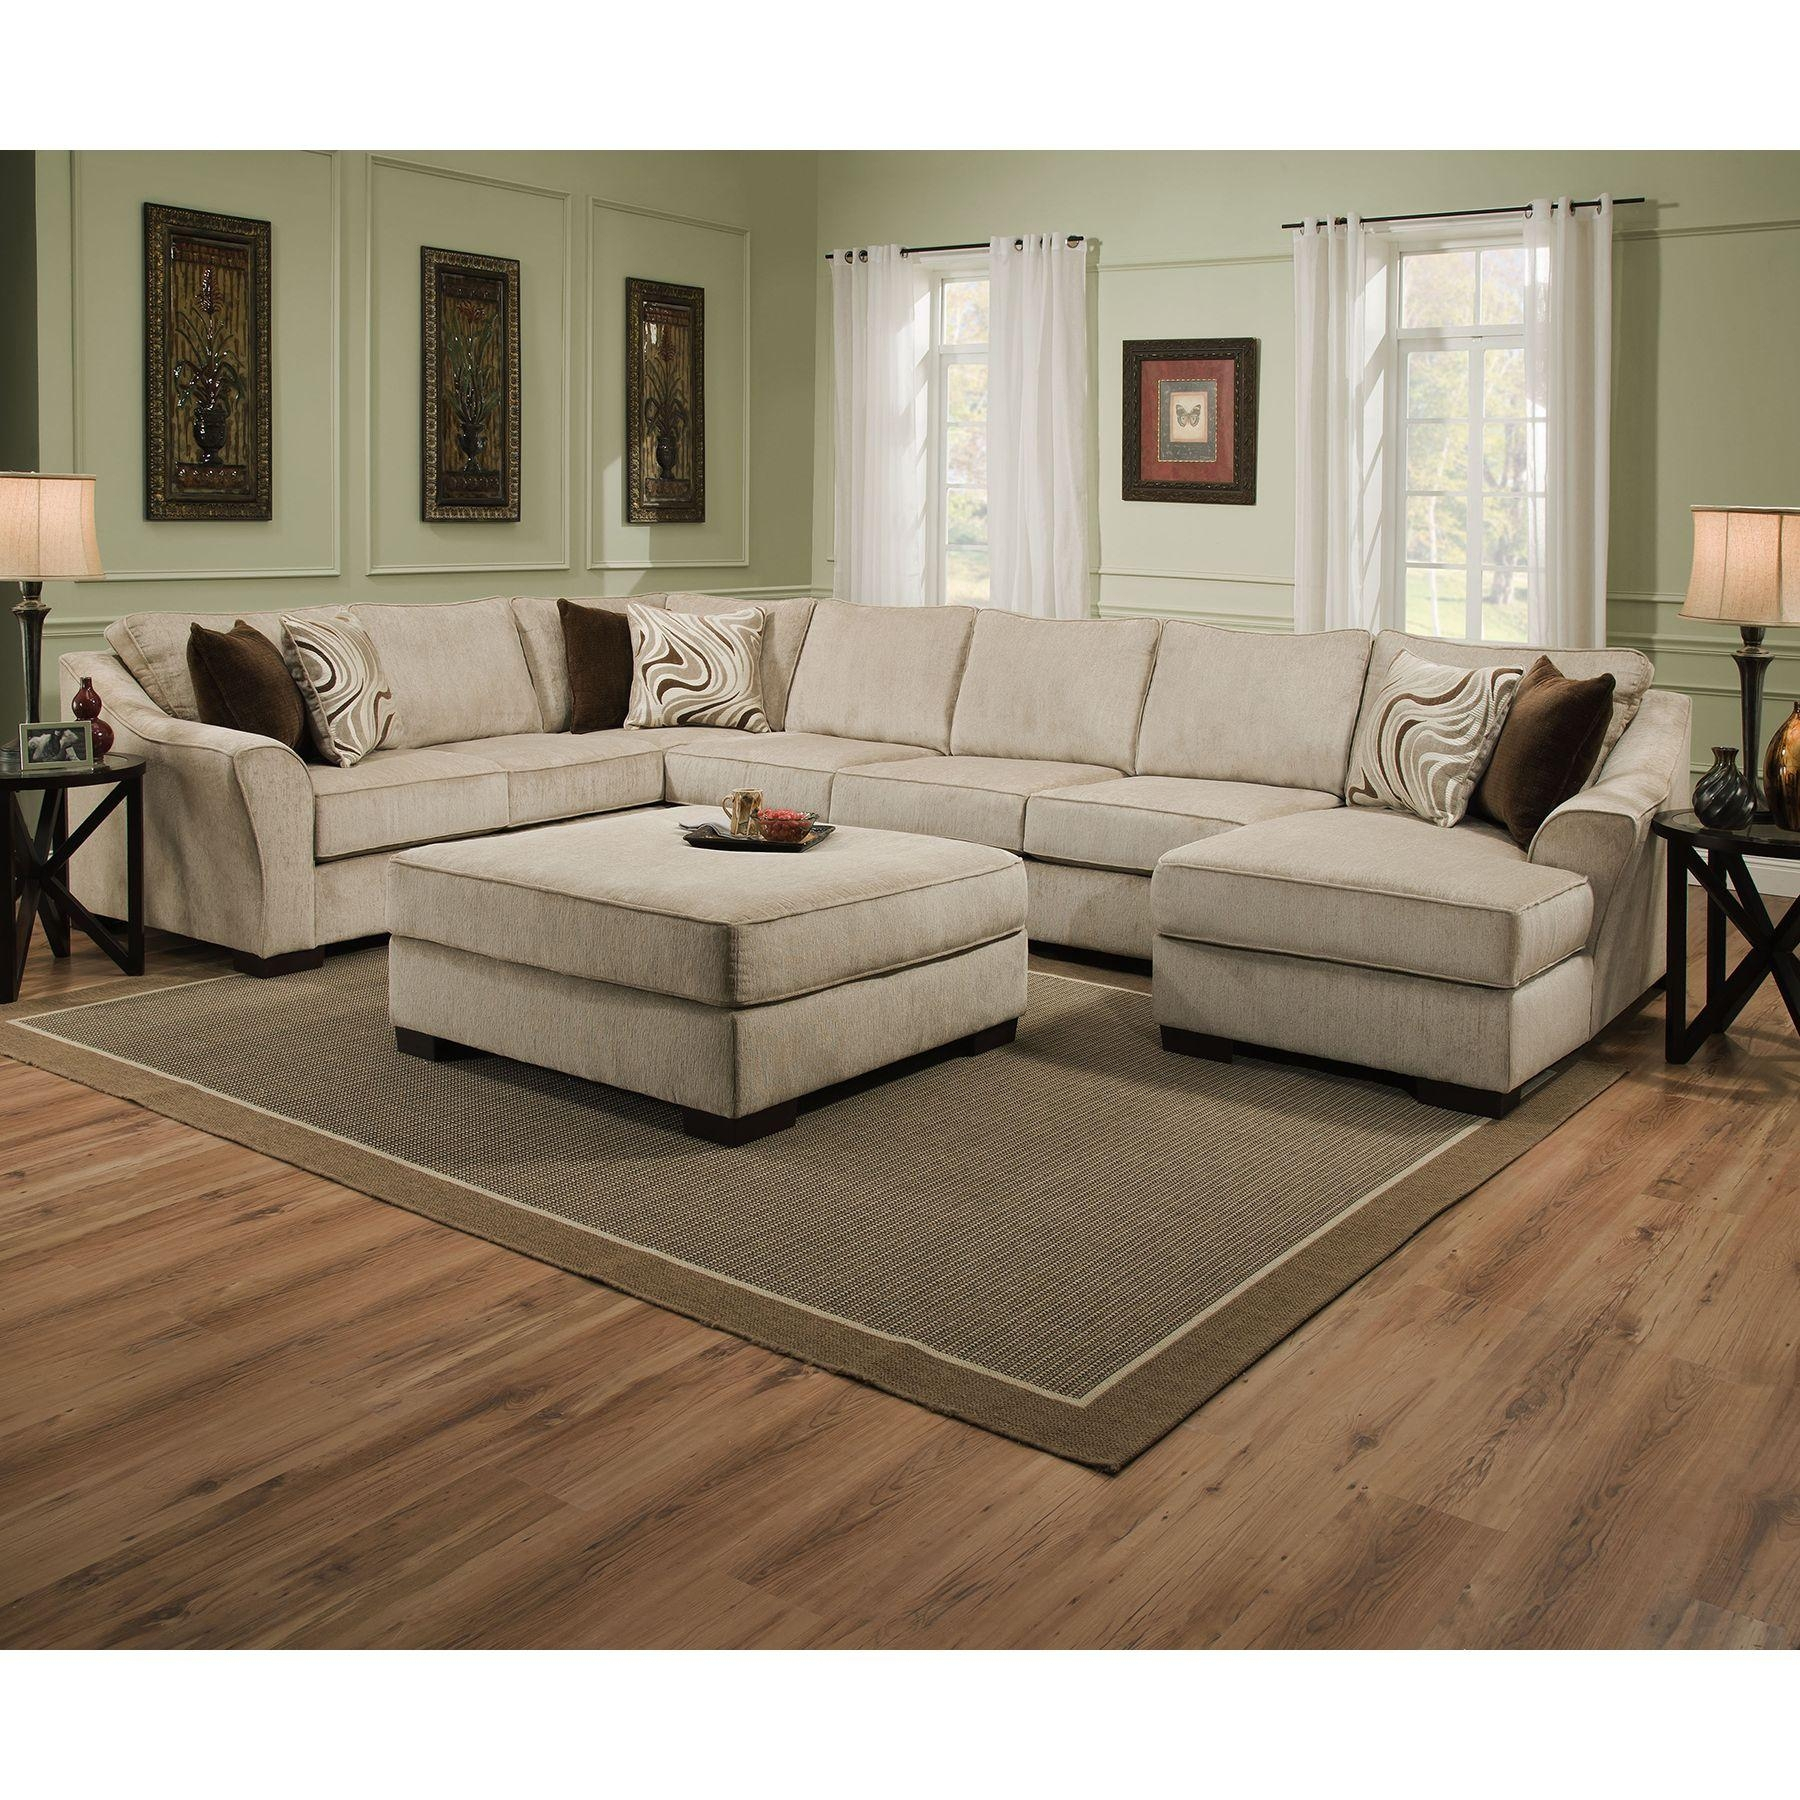 20 Best Large Comfortable Sectional Sofas | Sofa Ideas With Wide Sofa Chairs (View 2 of 15)